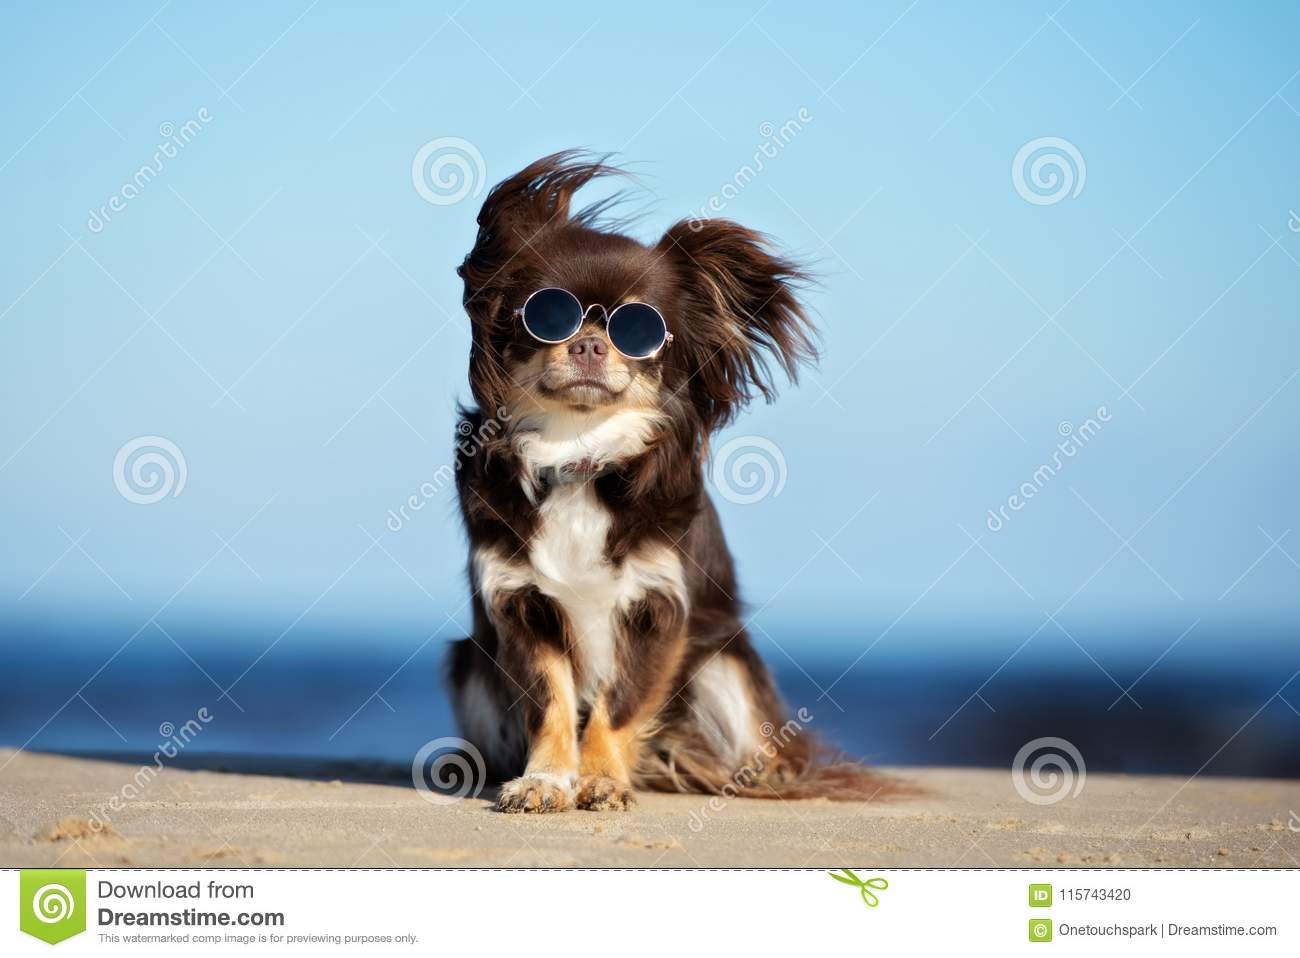 Download Funny Chihuahua Dog In Sunglasses Sitting On A Beach Stock Photo - Image of sunglasses, small: 115743420